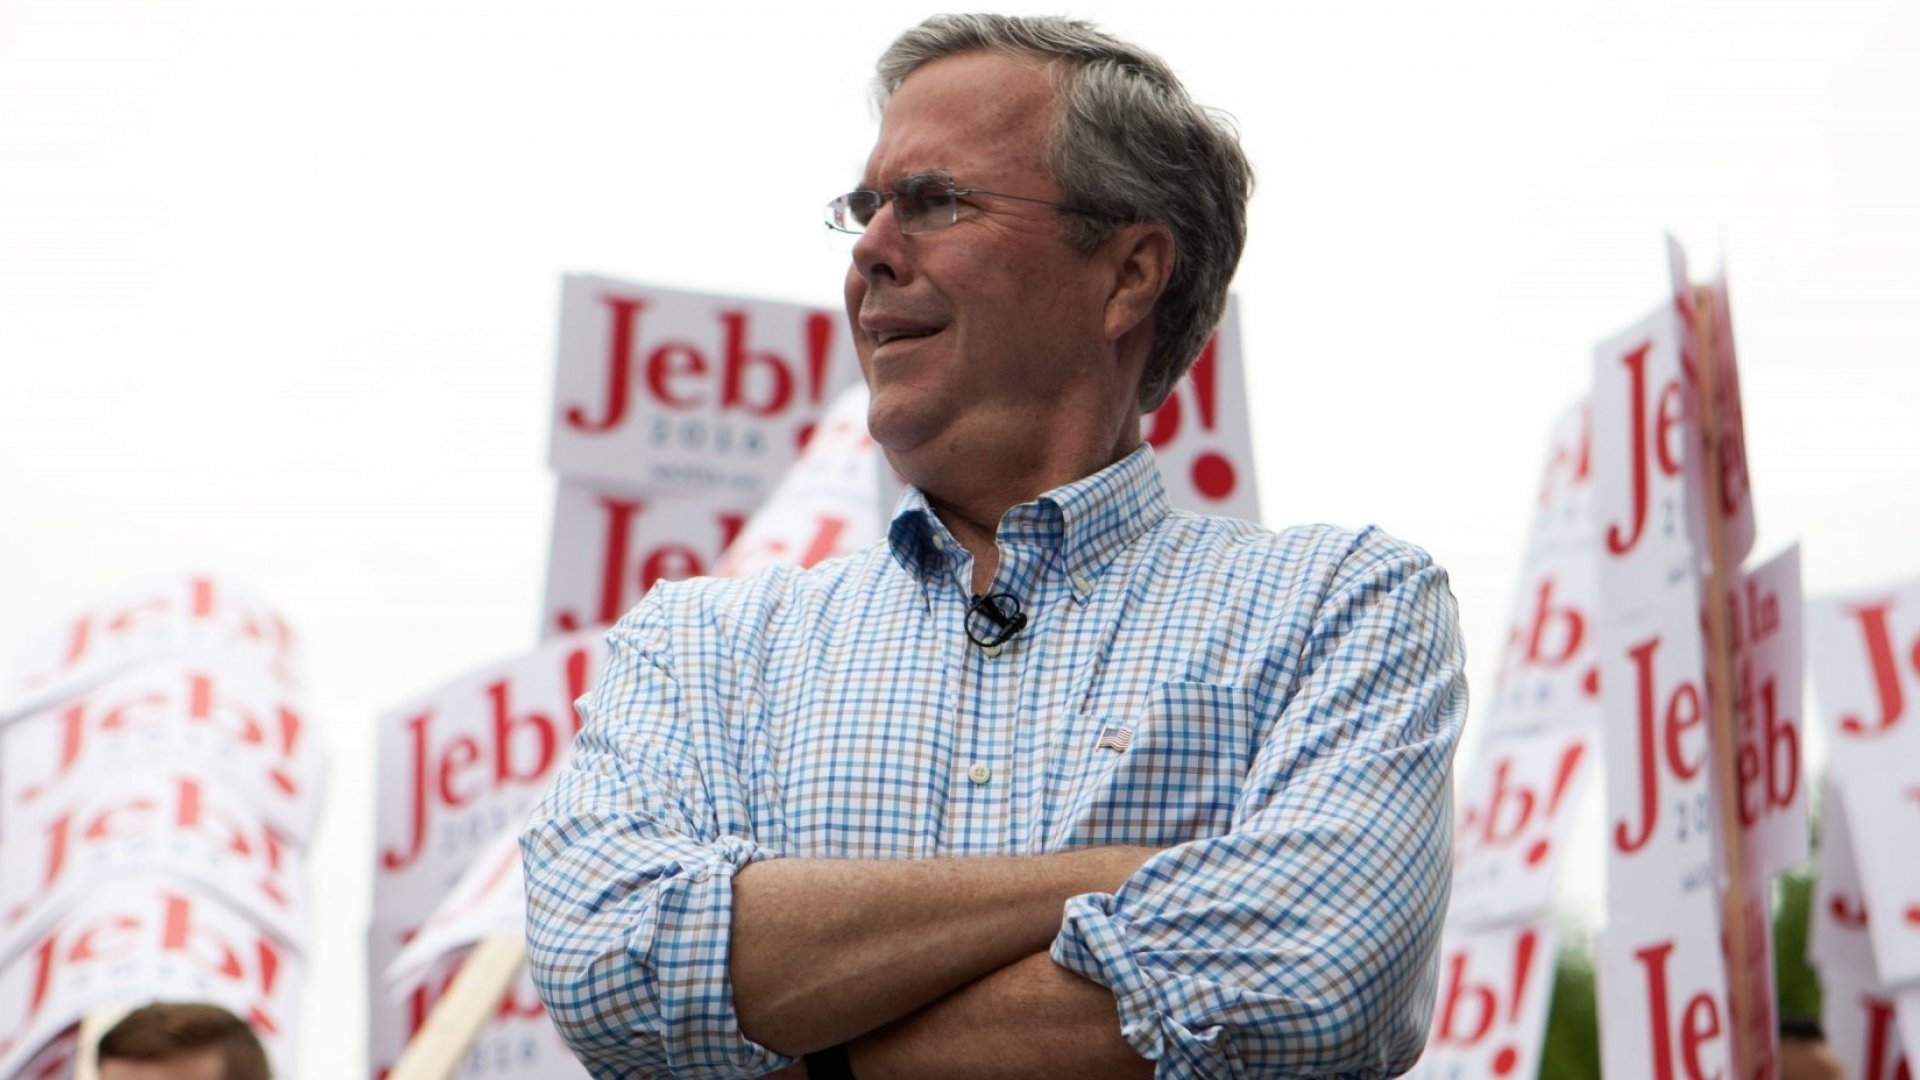 Why Jeb Bush Says You Should Work Longer Hours